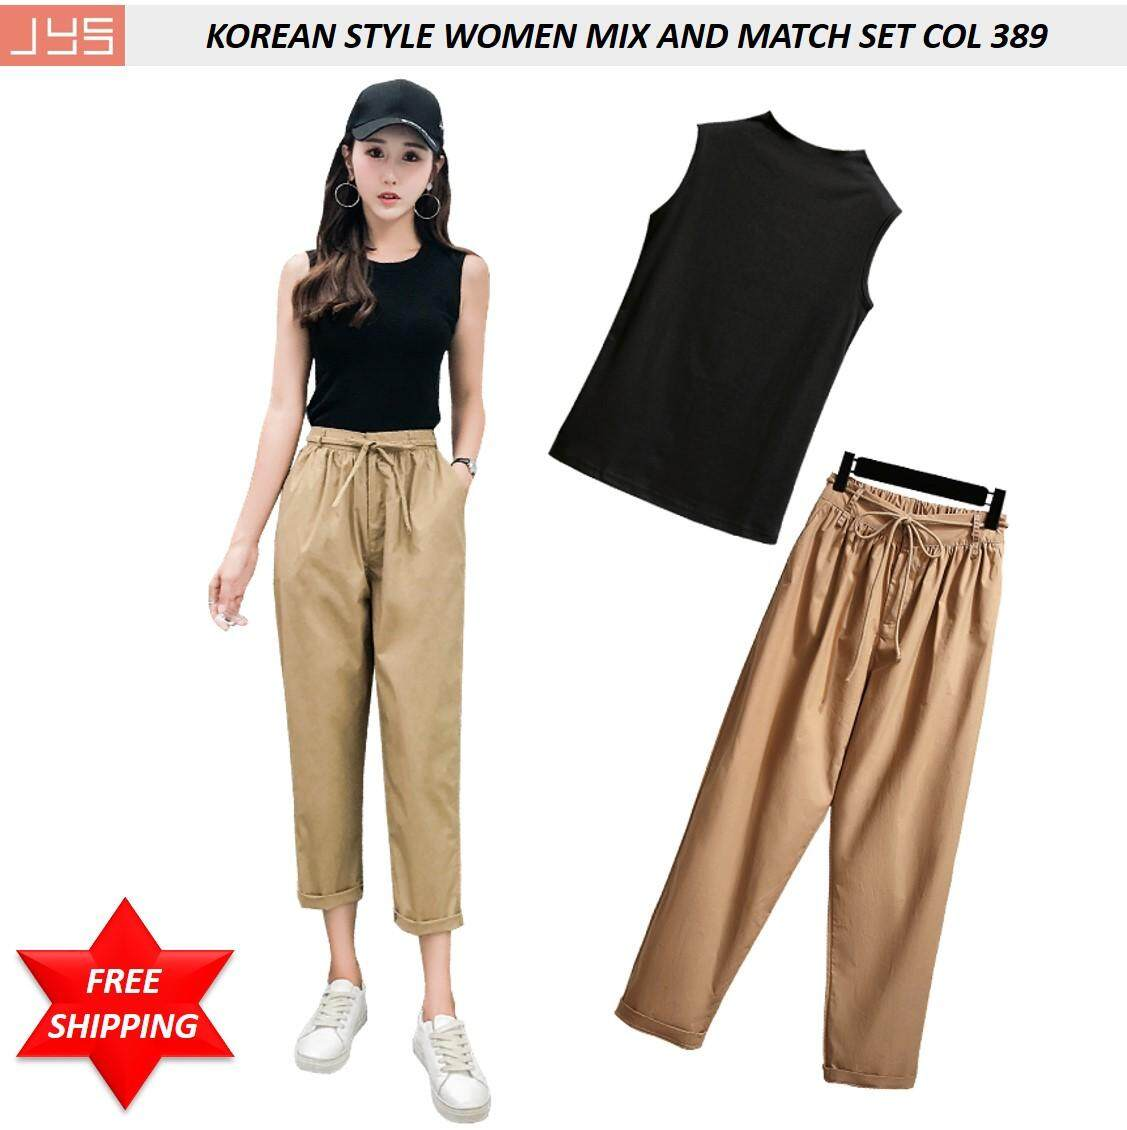 Jys Marketing New Arrival Kate Spade Small Rachelle Brightwater Drive Spring Bloom Green Hijau Fashion Korean Style Women Mix And Match Collection 389 8687